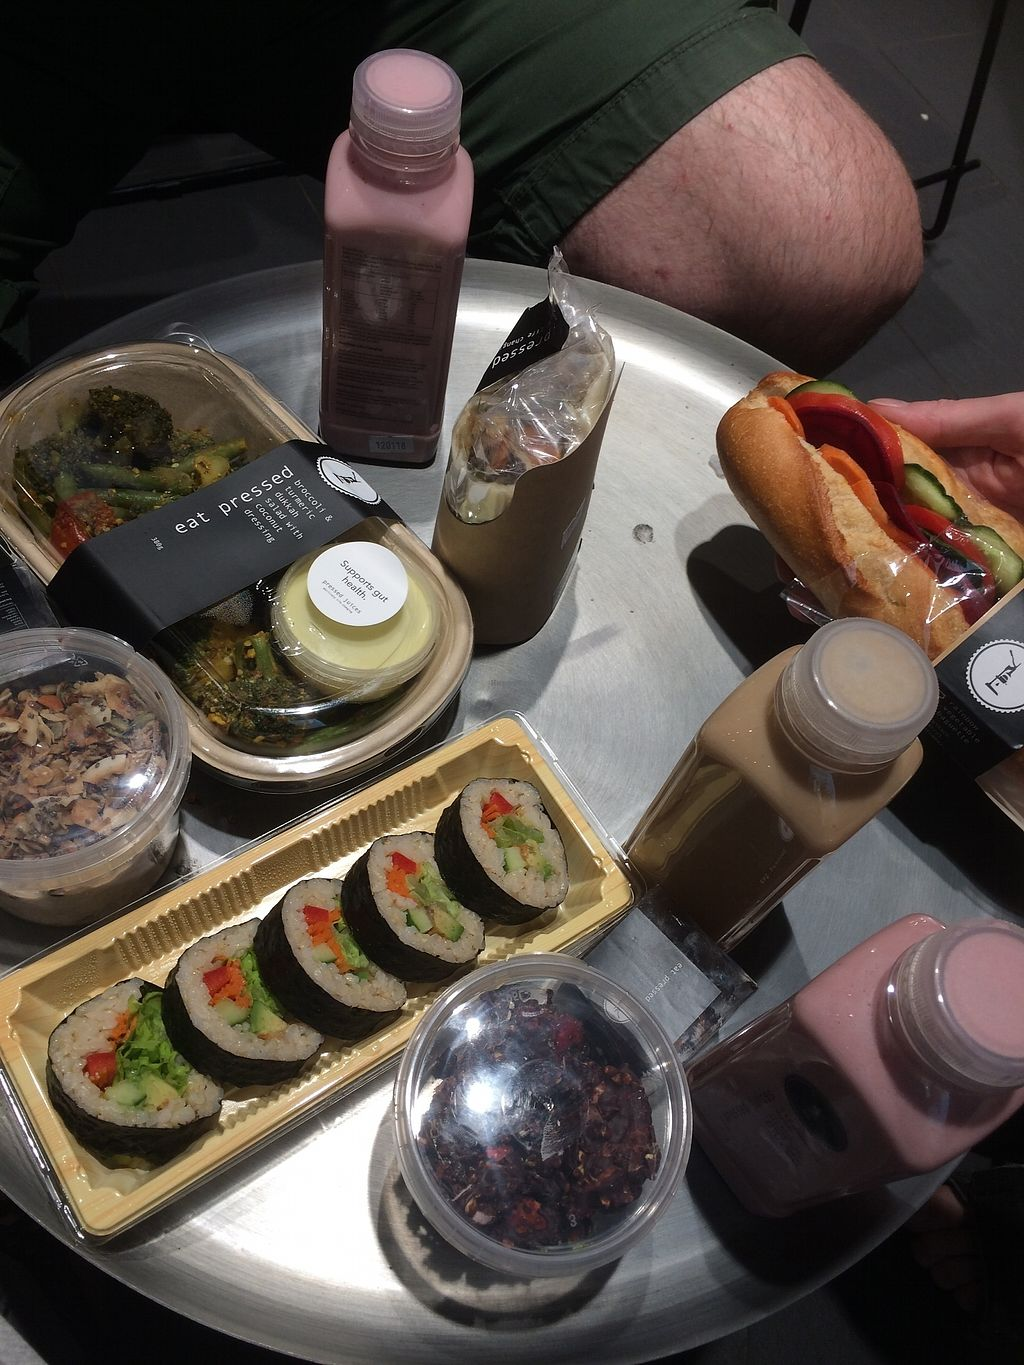 """Photo of Pressed Juices - Airport  by <a href=""""/members/profile/alia_801"""">alia_801</a> <br/>Sushi, salad, wrap, mylk shakes, vegan baguette and chocolate treats <br/> January 12, 2018  - <a href='/contact/abuse/image/109245/345880'>Report</a>"""